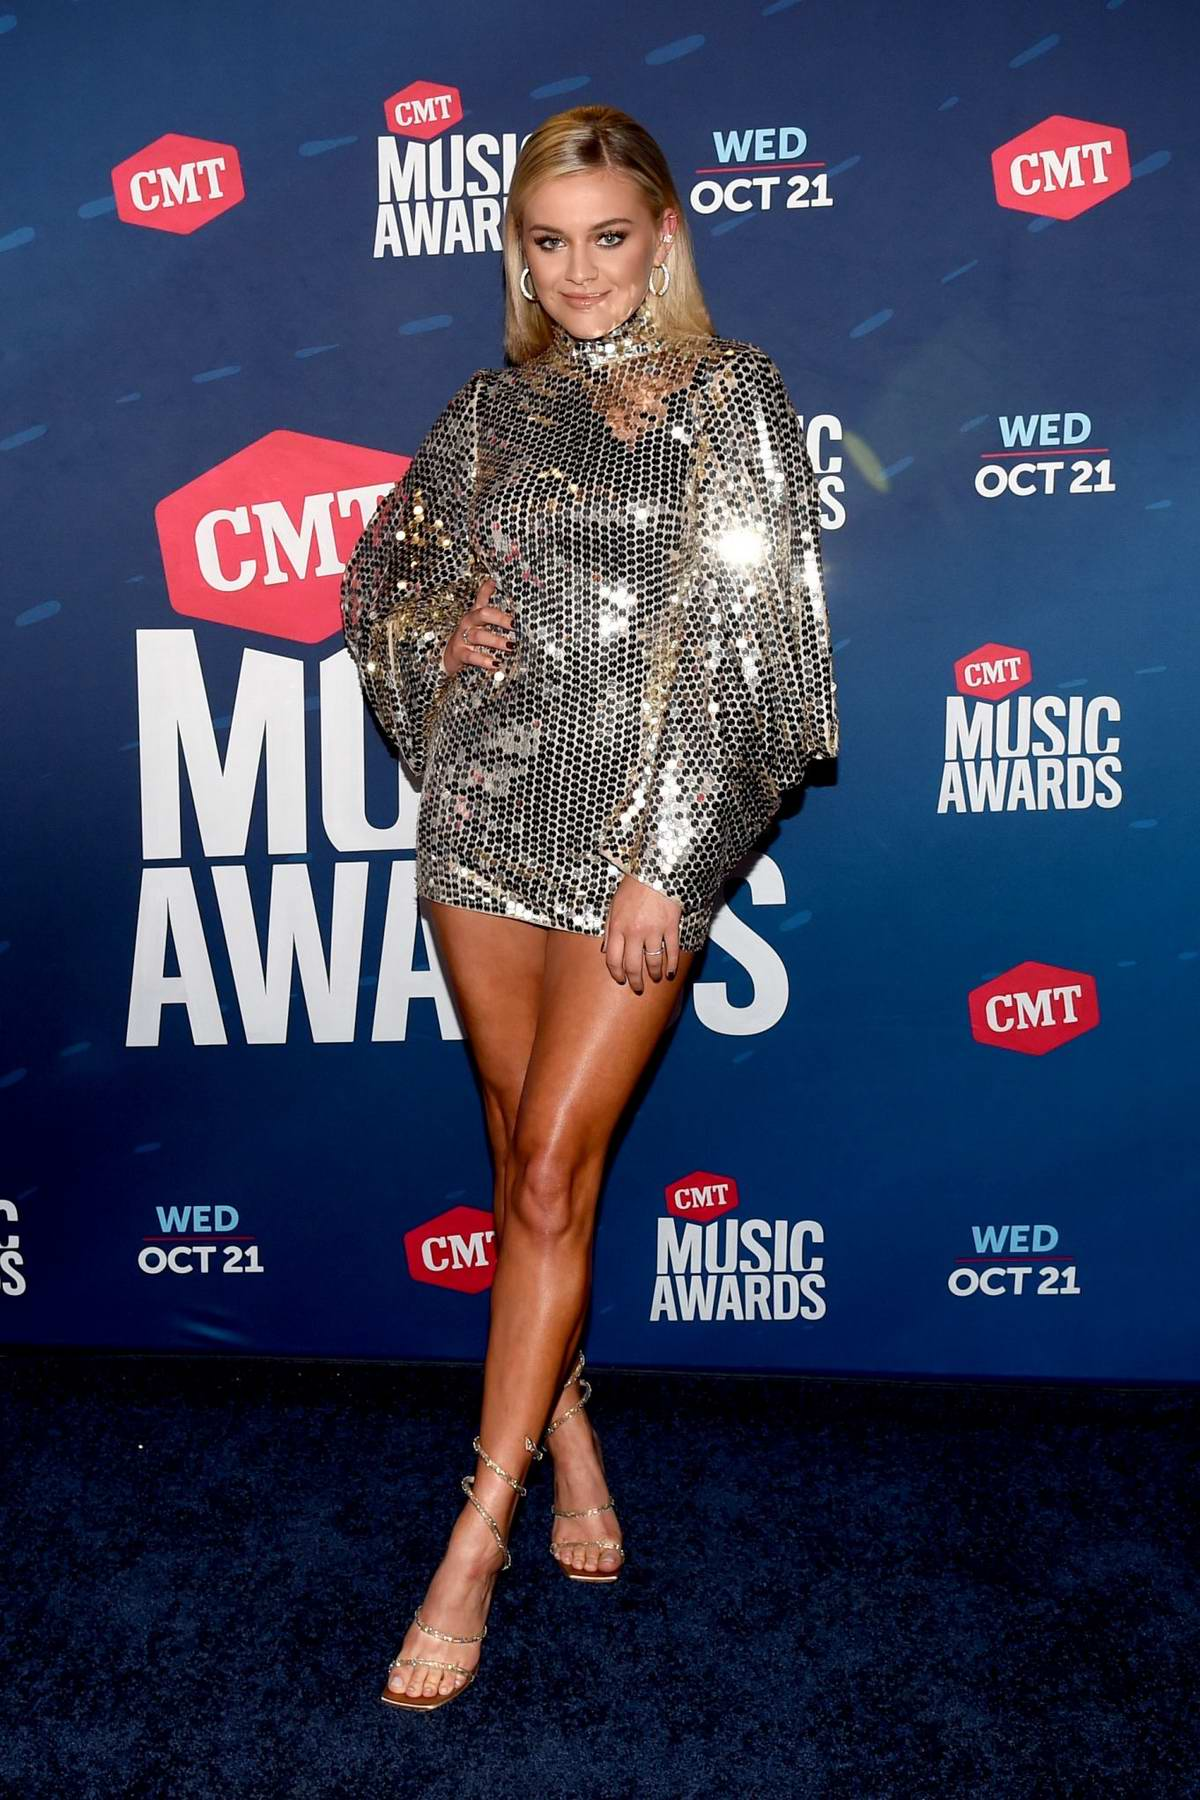 Kelsea Ballerini attends the 2020 CMT Awards in Nashville, Tennessee